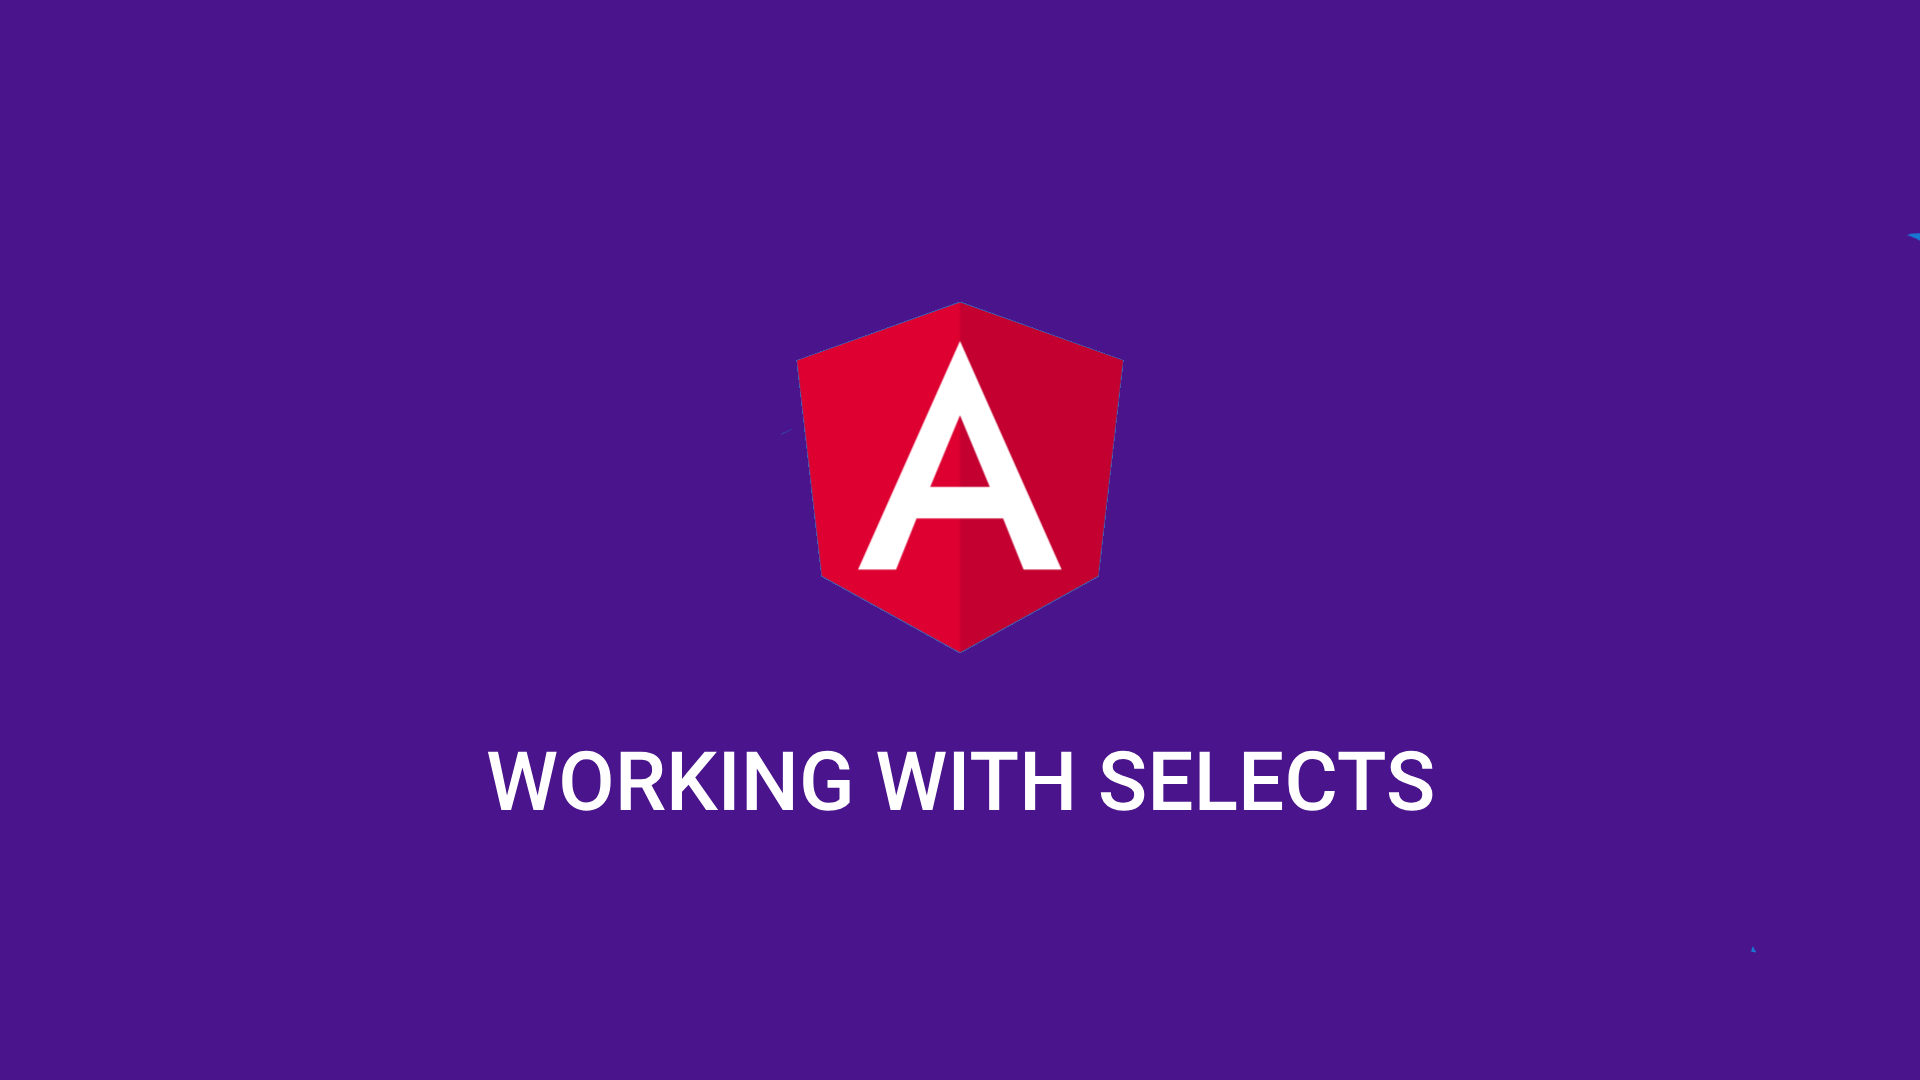 How to set selected option dynamically in Angular 6